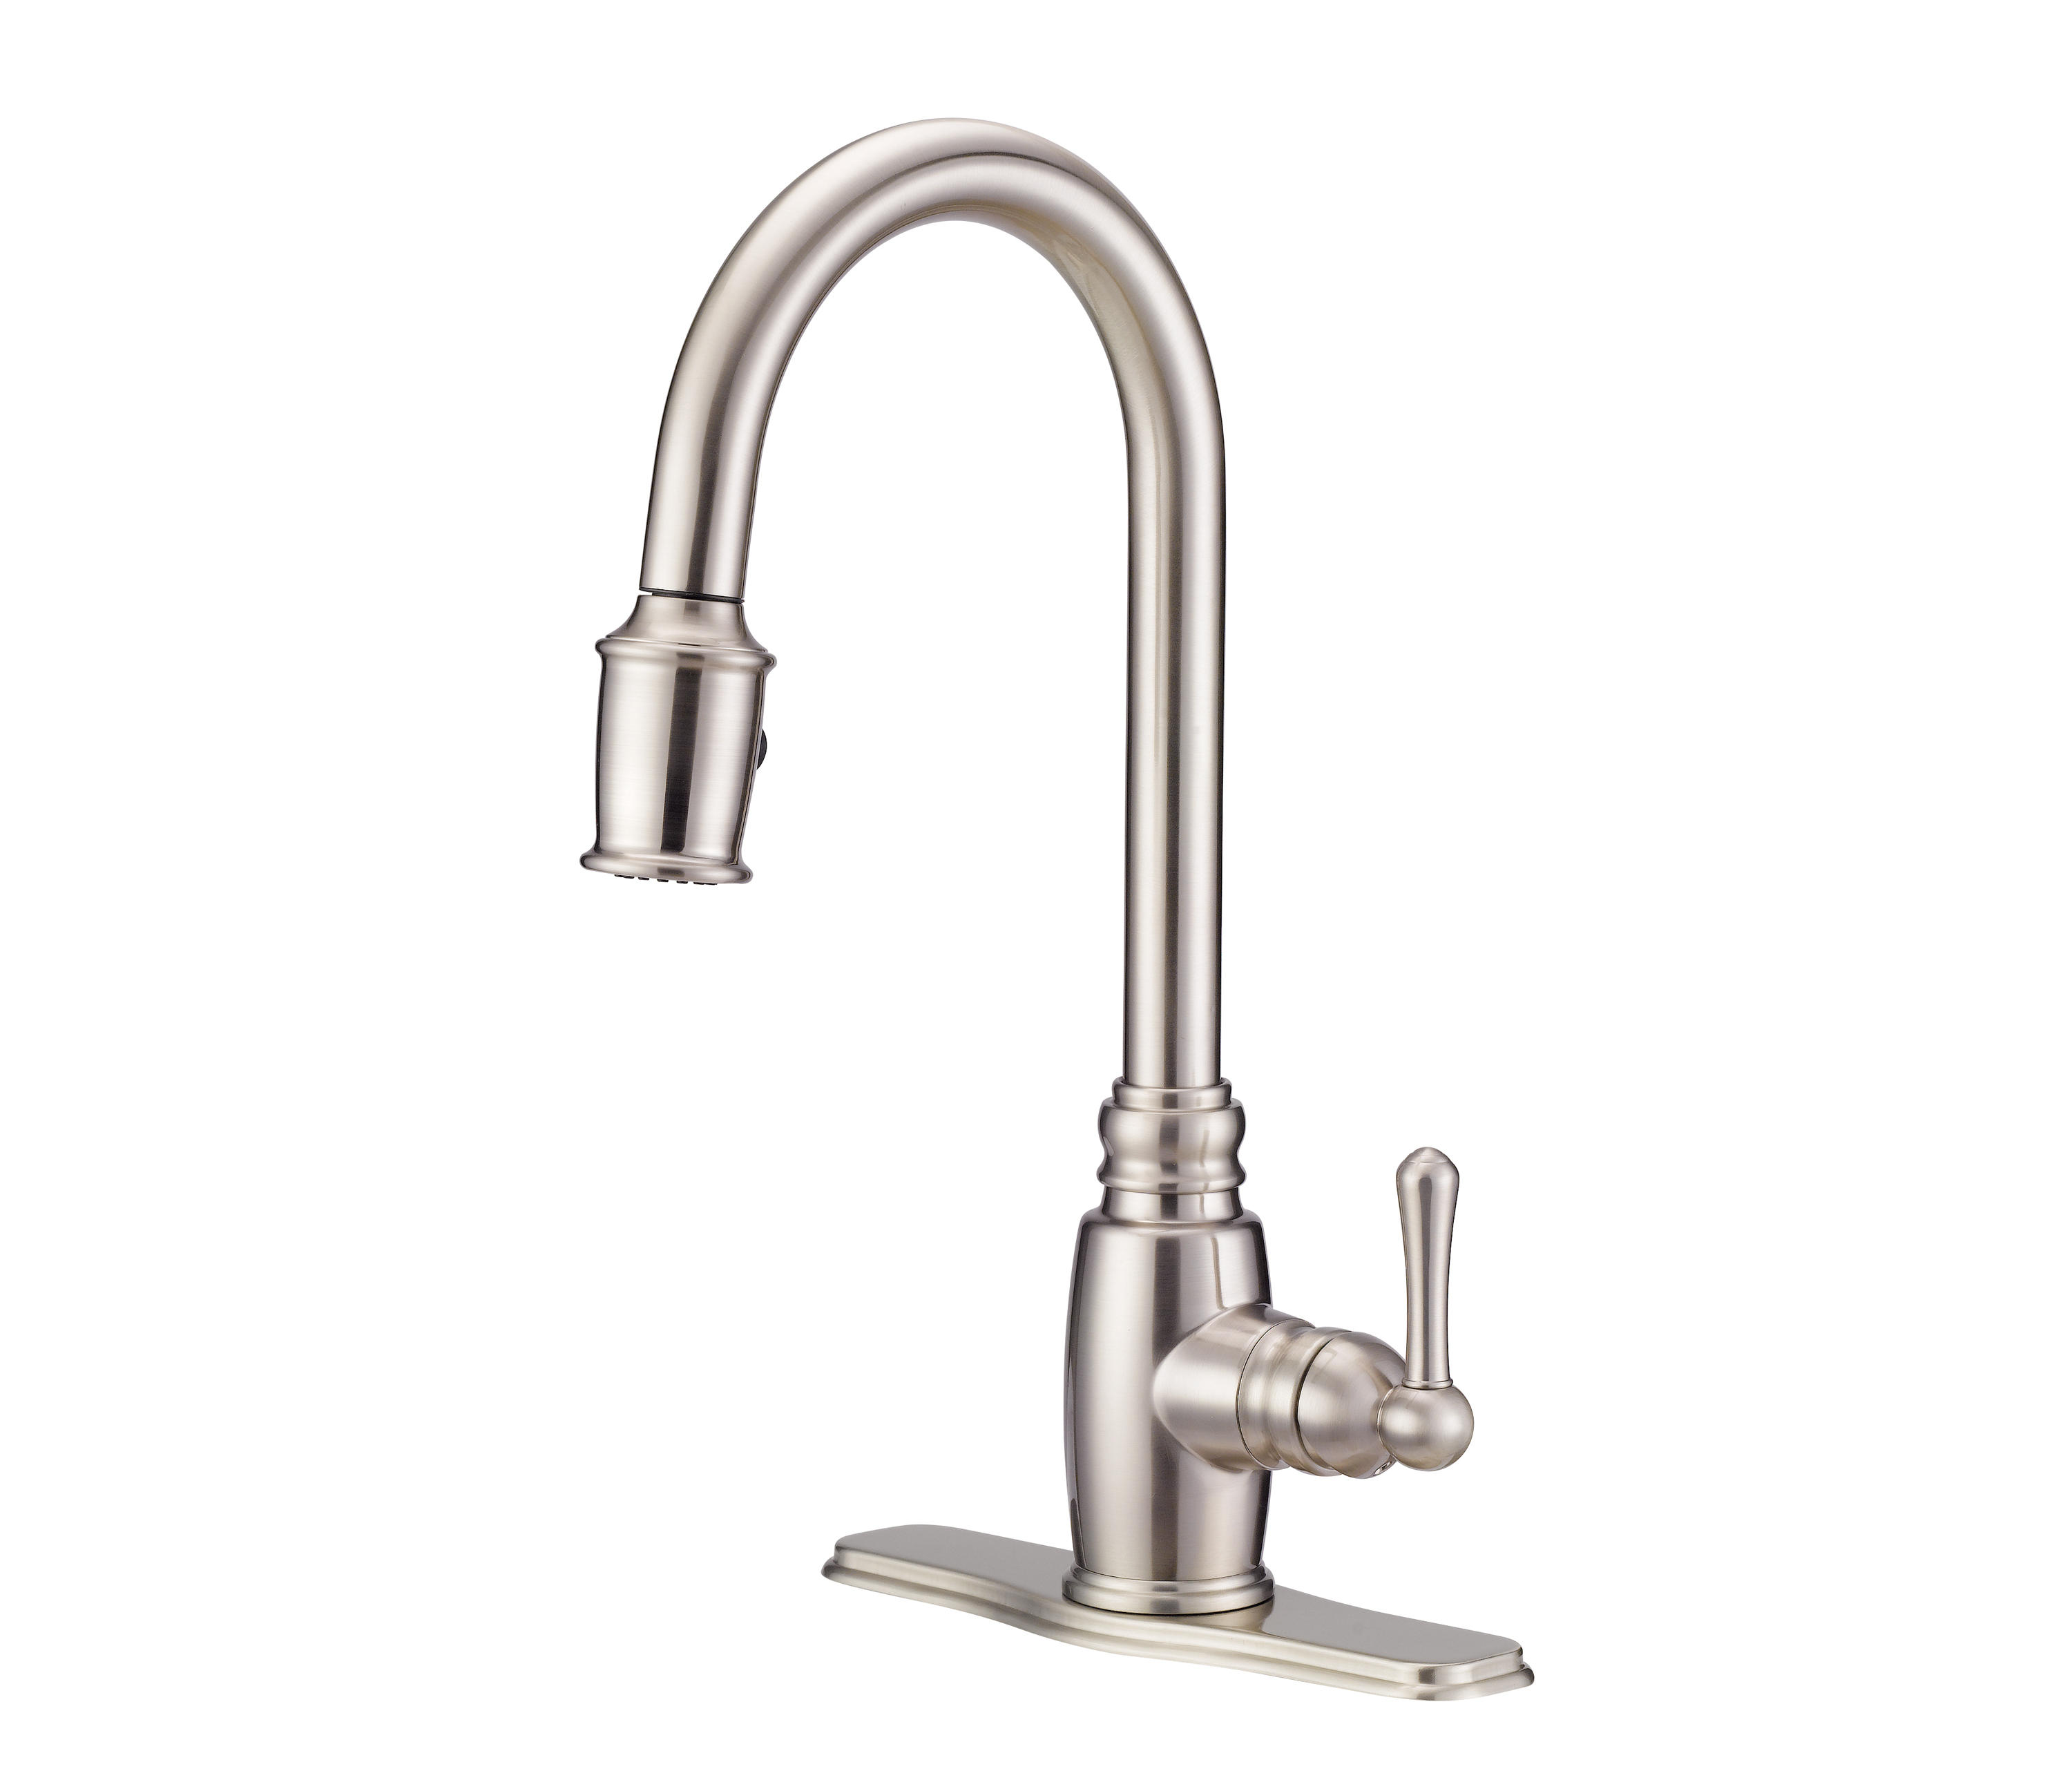 opulence pull down kitchen faucet by danze kitchen taps - Danze Kitchen Faucets